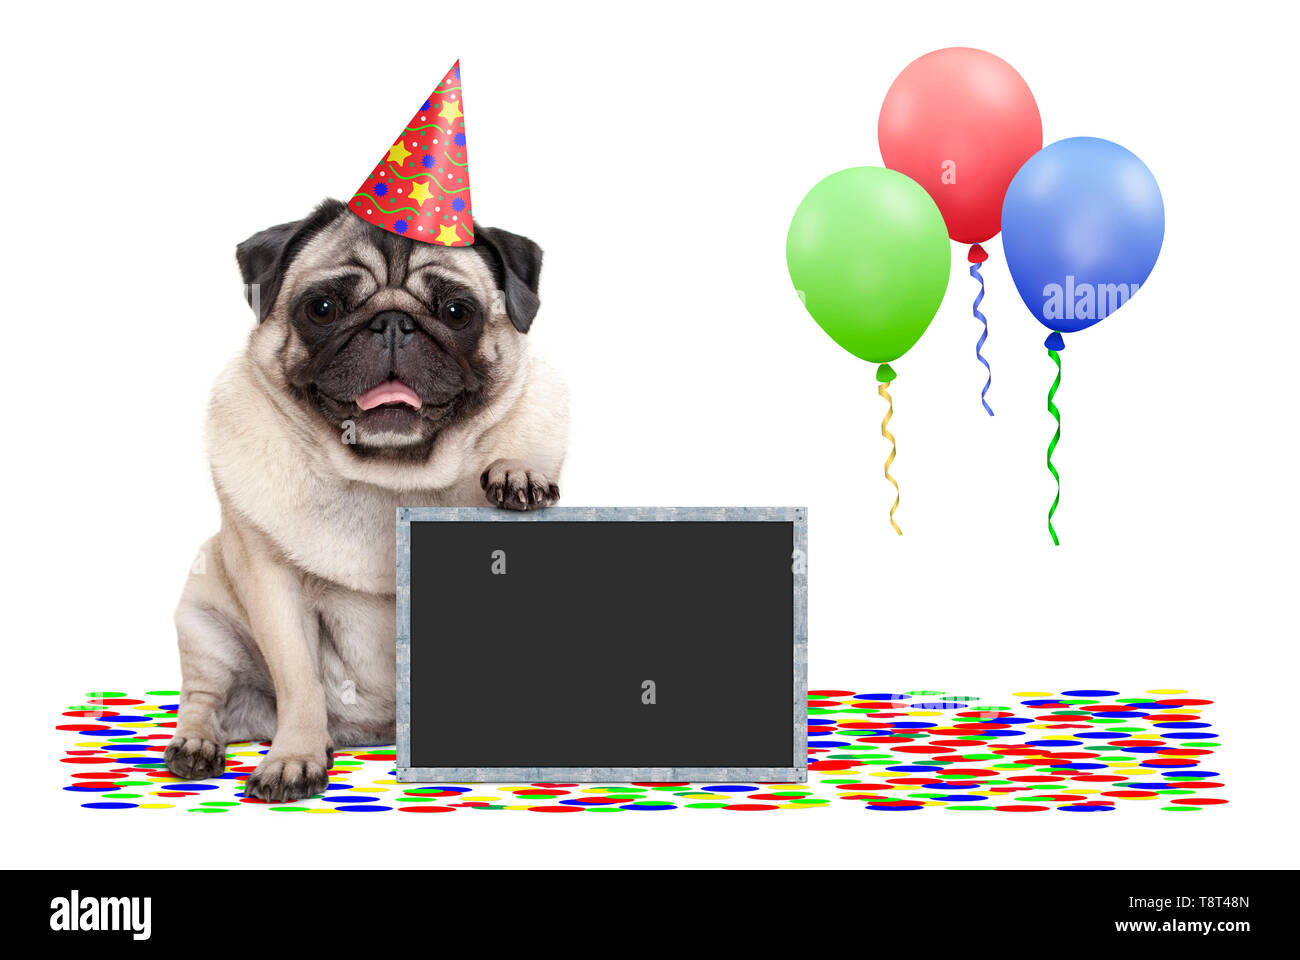 frolic smiling birthday party pug dog, with blackboard, confetti and balloons decoration, isolated on white background Stock Photo